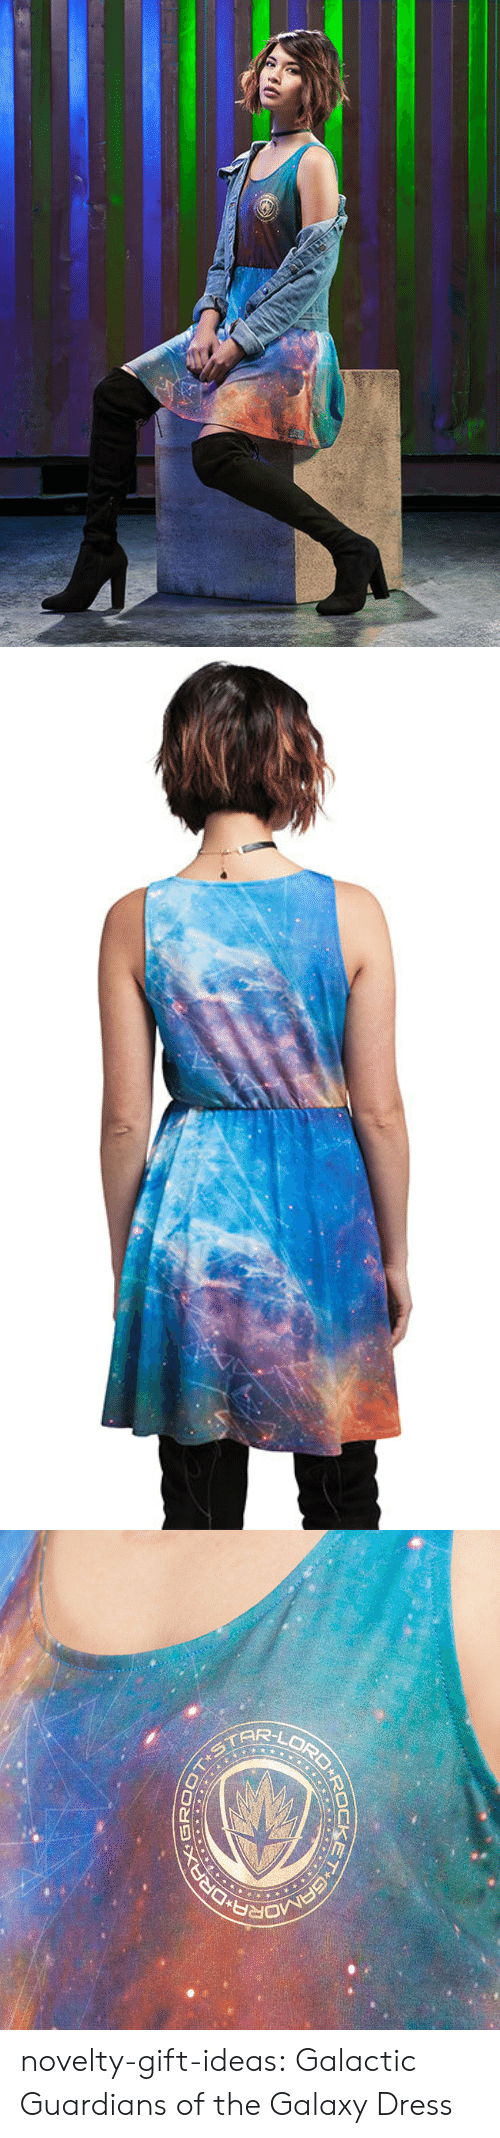 Tumblr, Blog, and Dress: novelty-gift-ideas:  Galactic Guardians of the Galaxy Dress